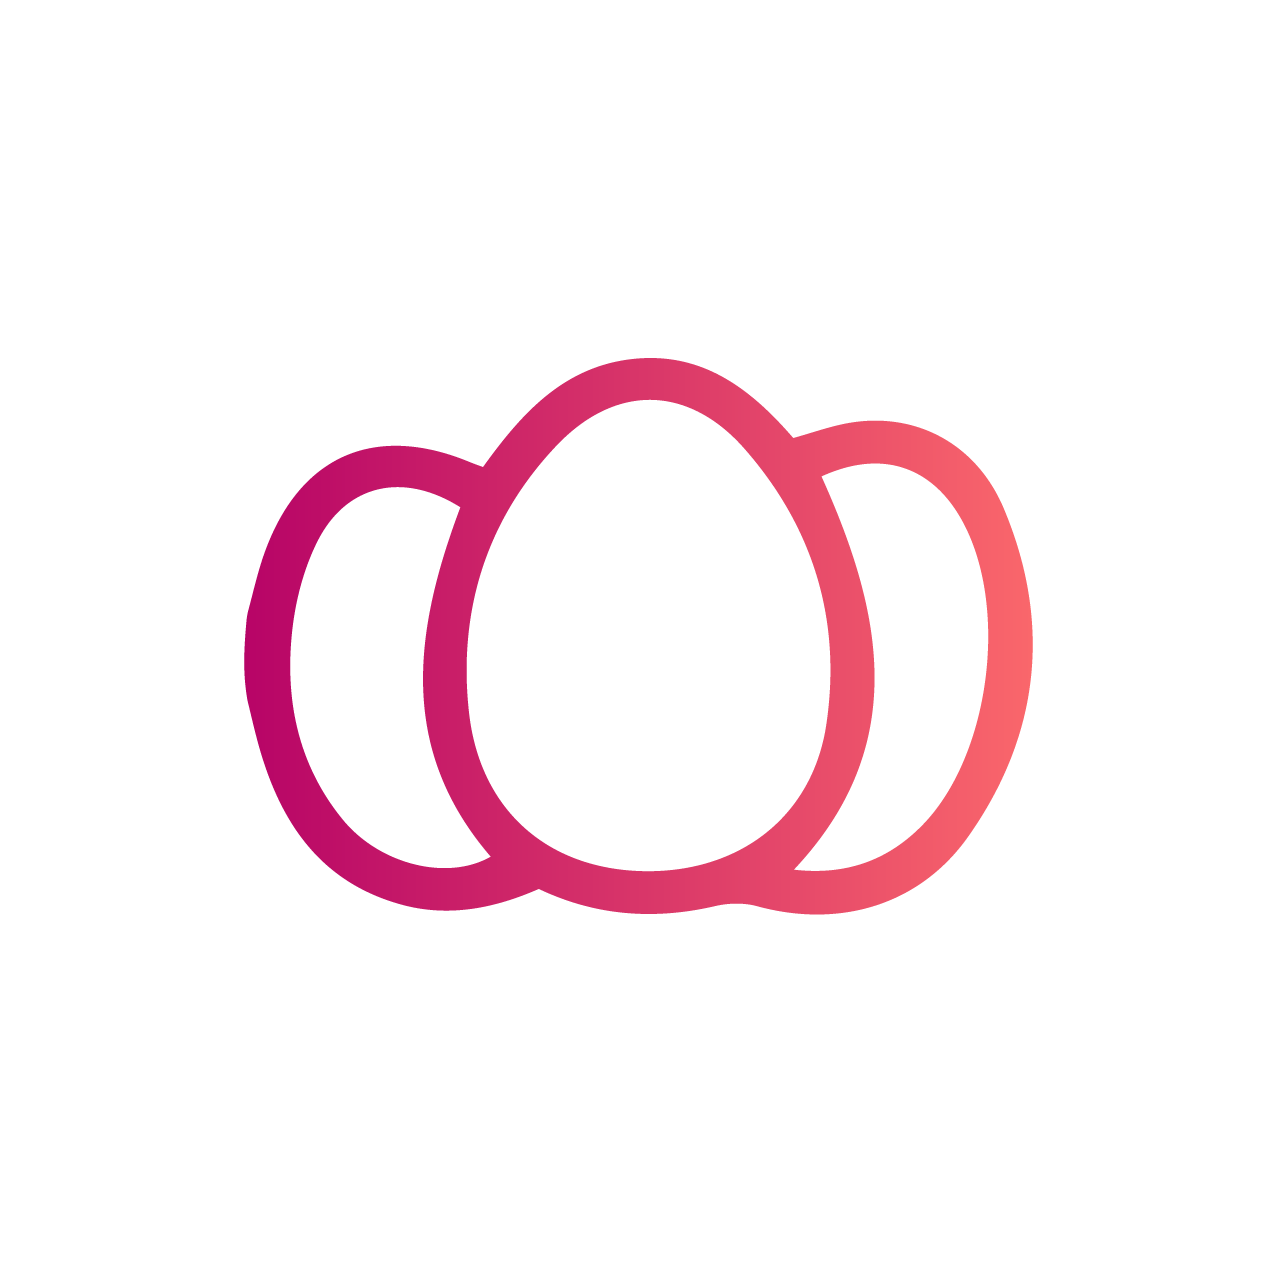 icon-09 (1).png